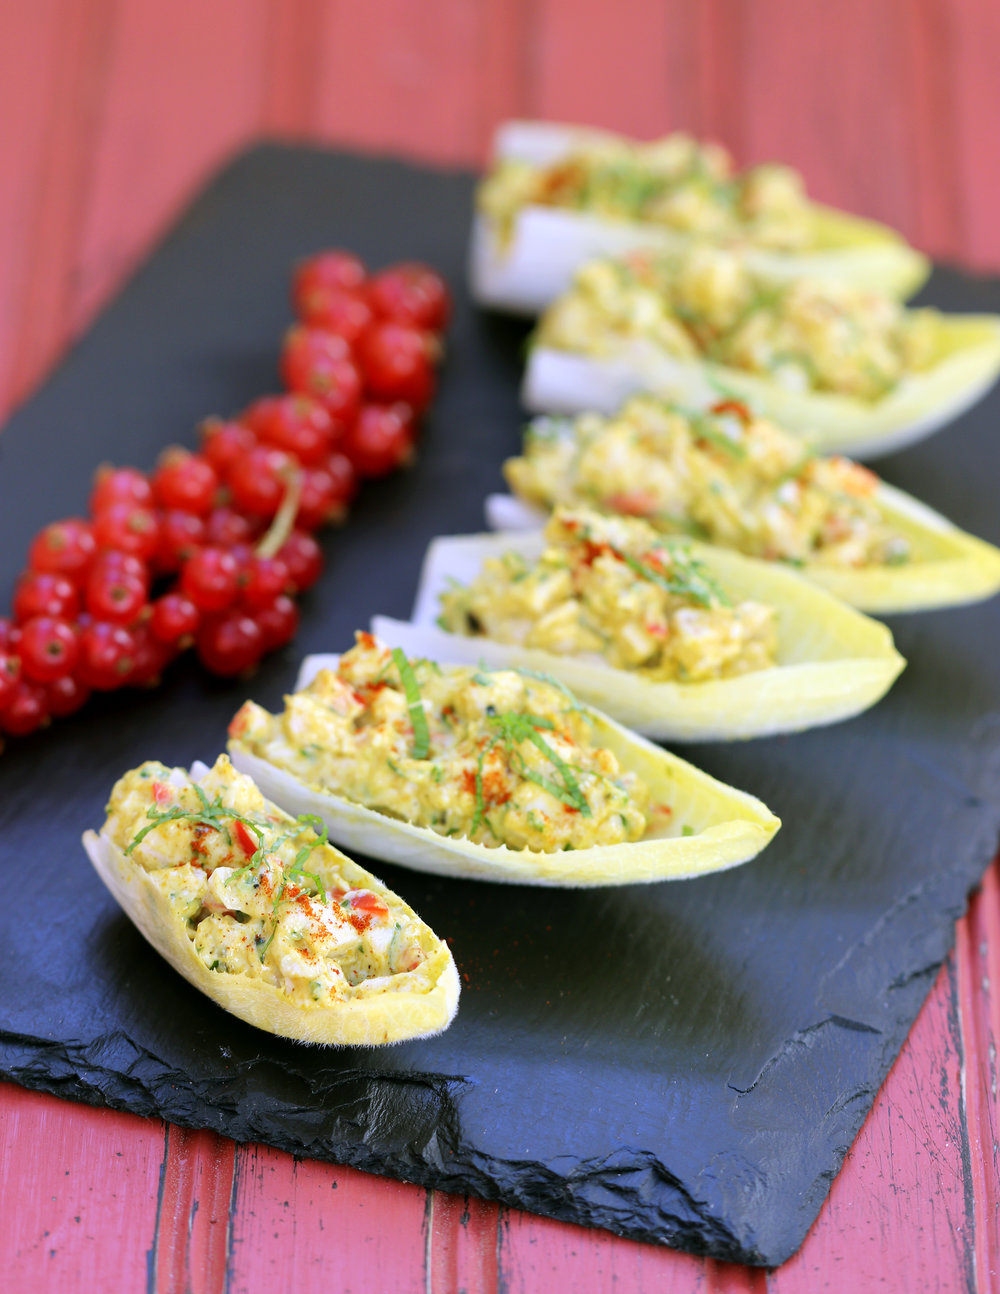 CURRIED CHICKEN SALAD CANAPES